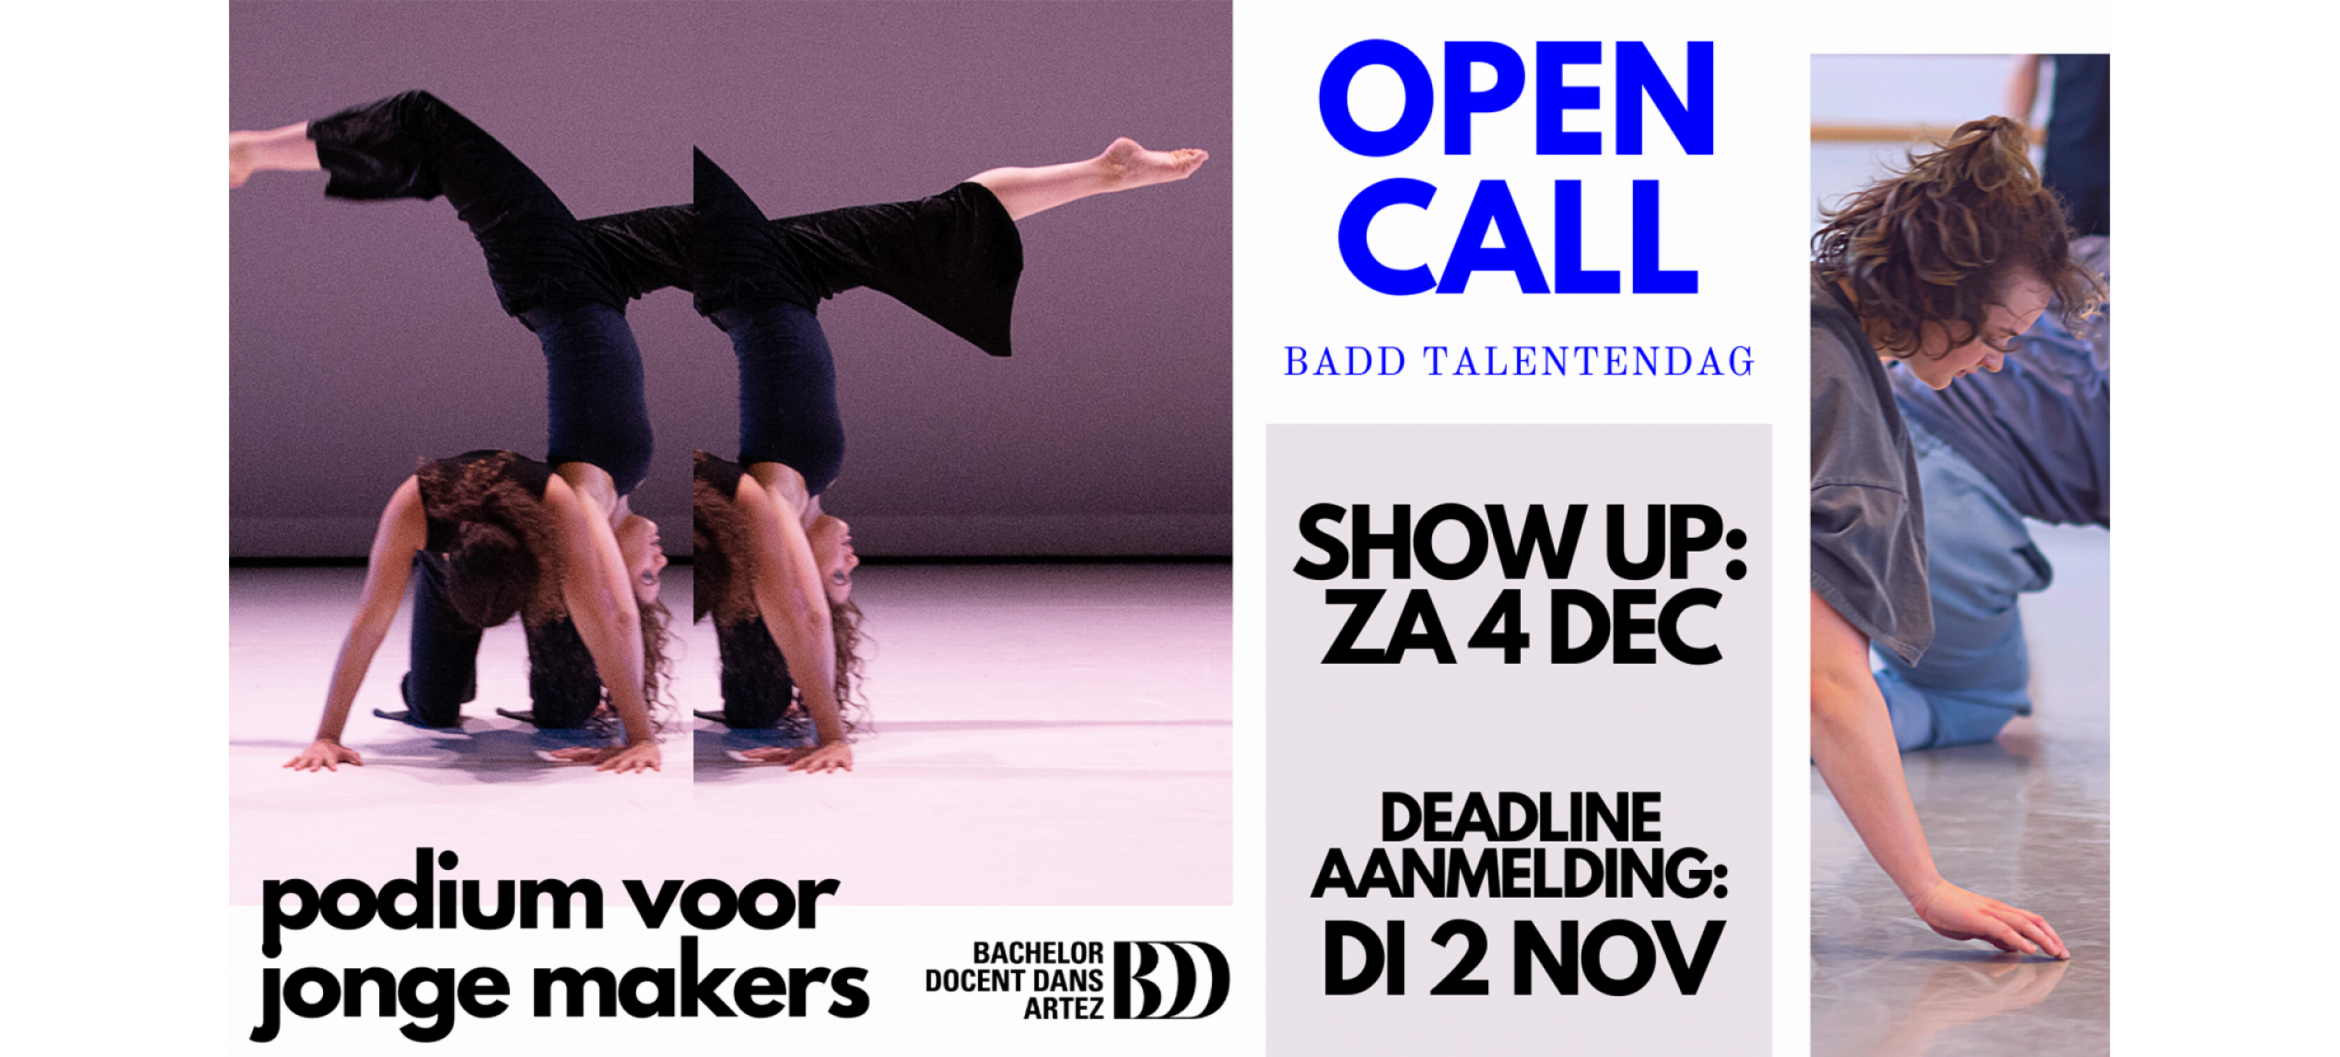 OPEN CALL   Bachelor of Dance Talent Day   SHOW UP!